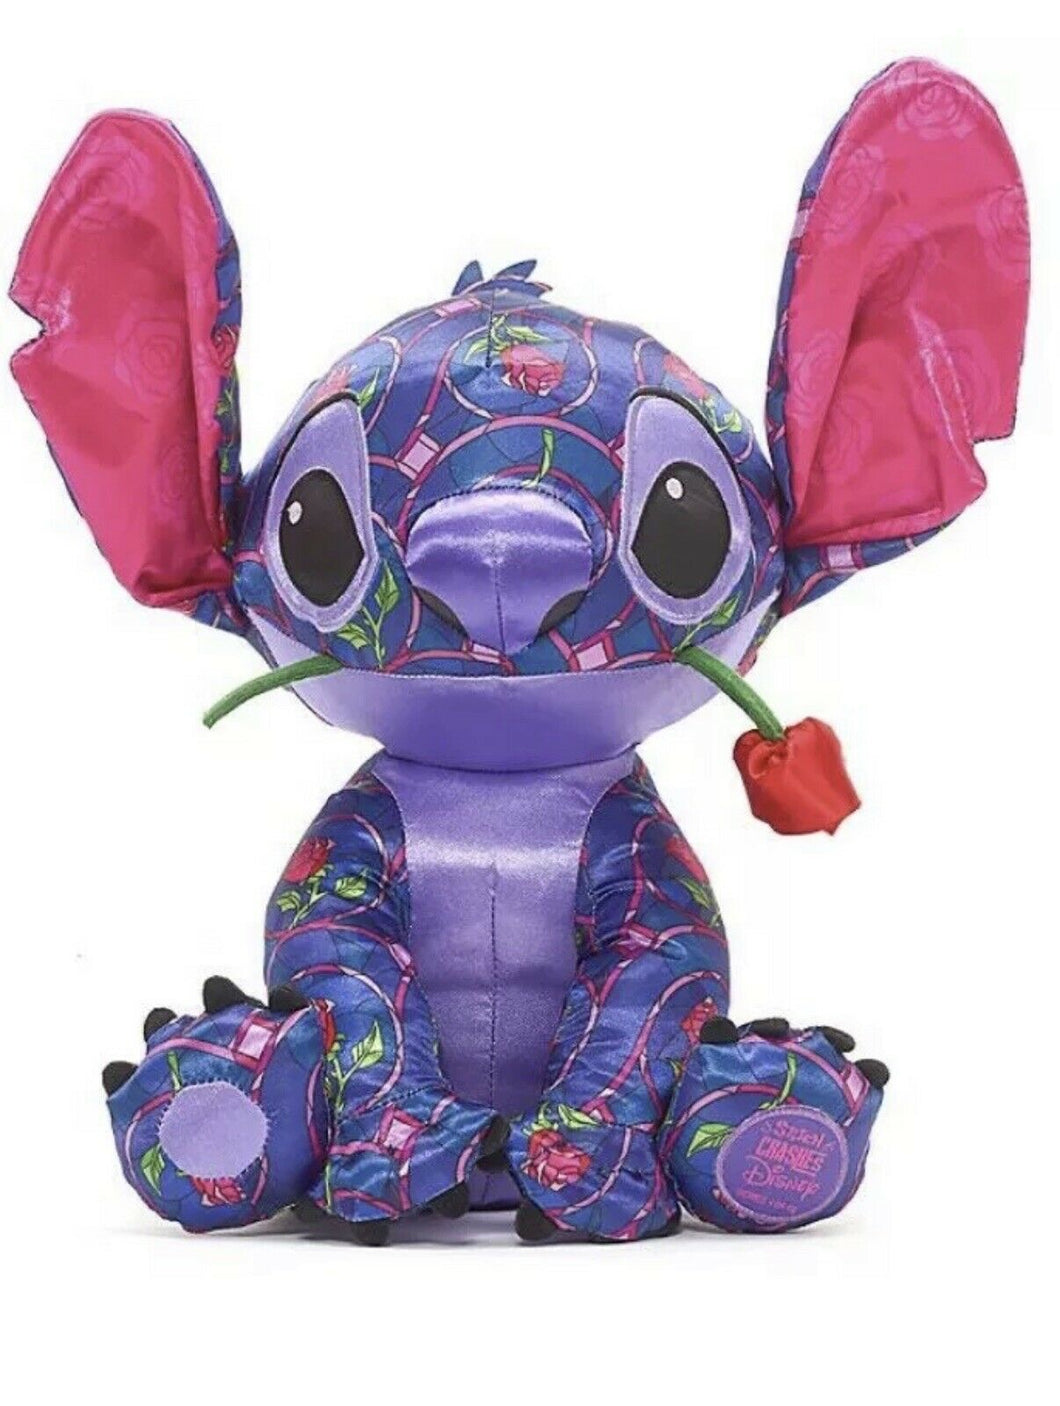 Stitch Crashes Disney Plush Beauty And The Beast